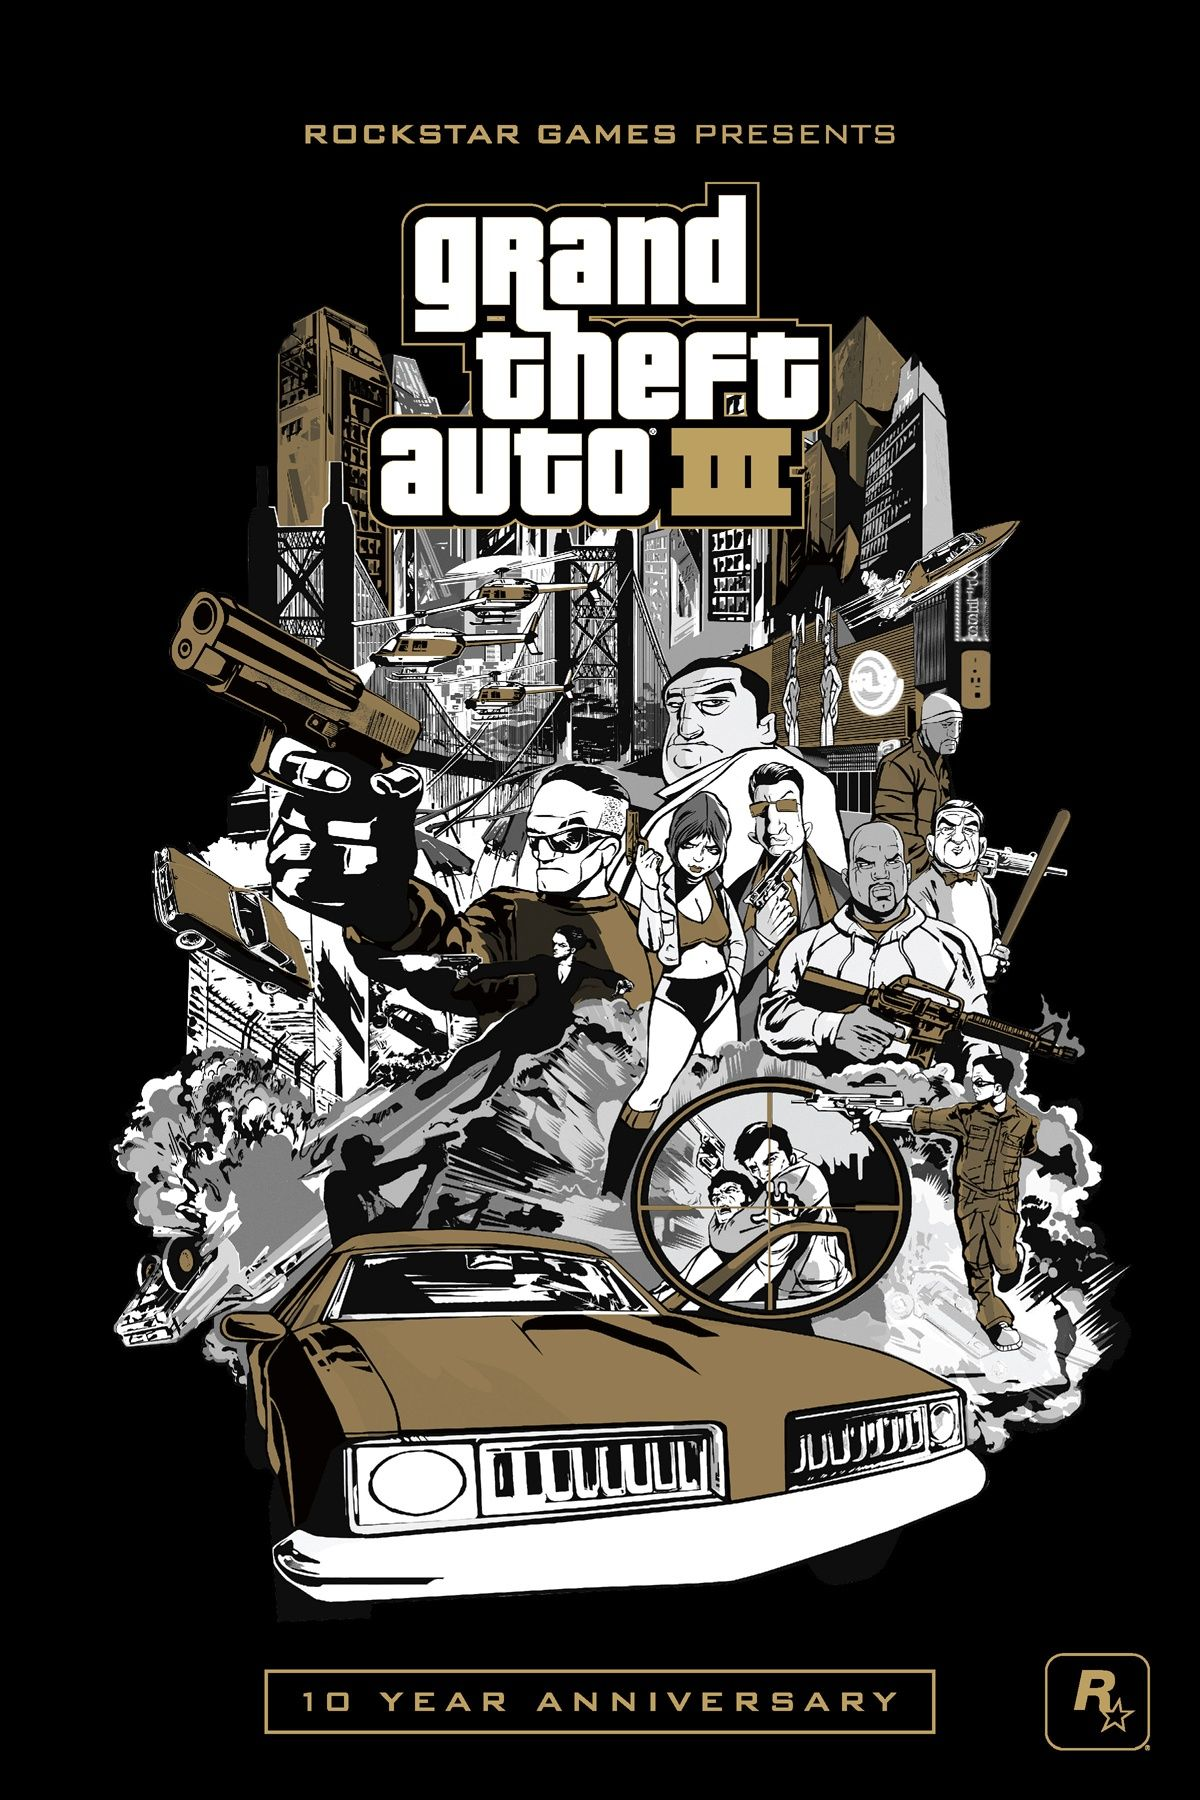 Download GTA 3 for PC [141 MB]